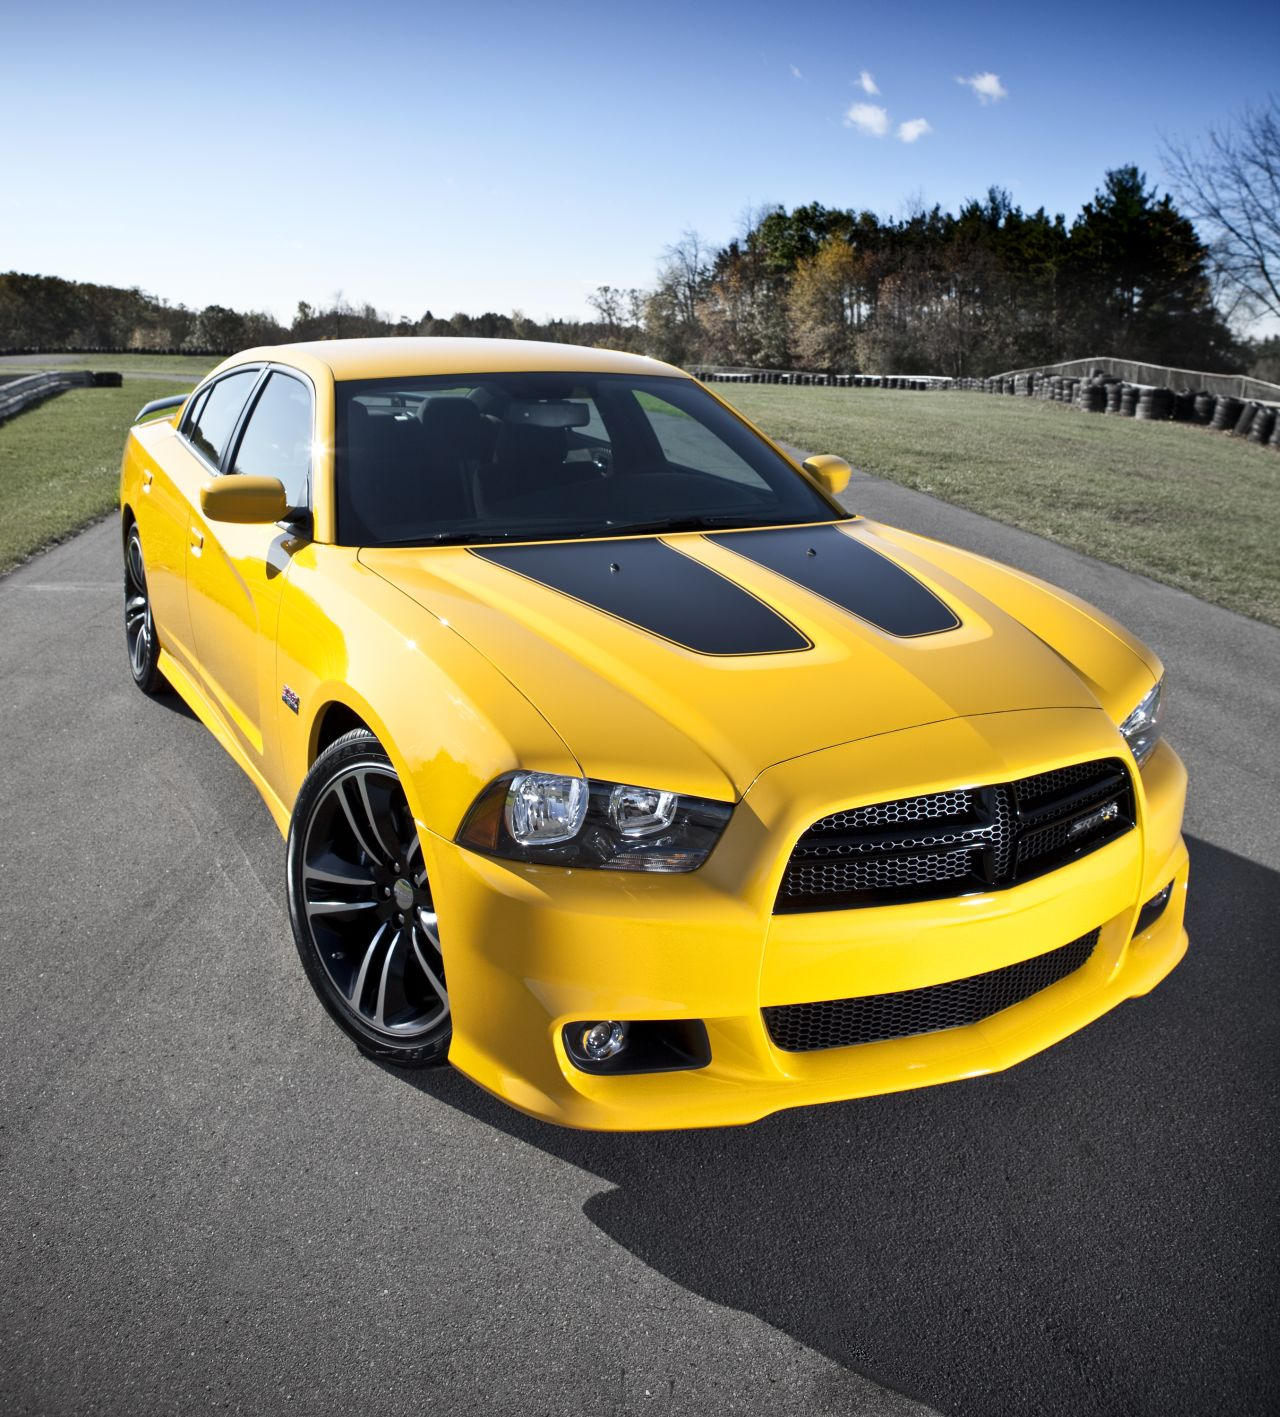 dodge challenger srt8 yellow jacket charger yellow bee. Black Bedroom Furniture Sets. Home Design Ideas